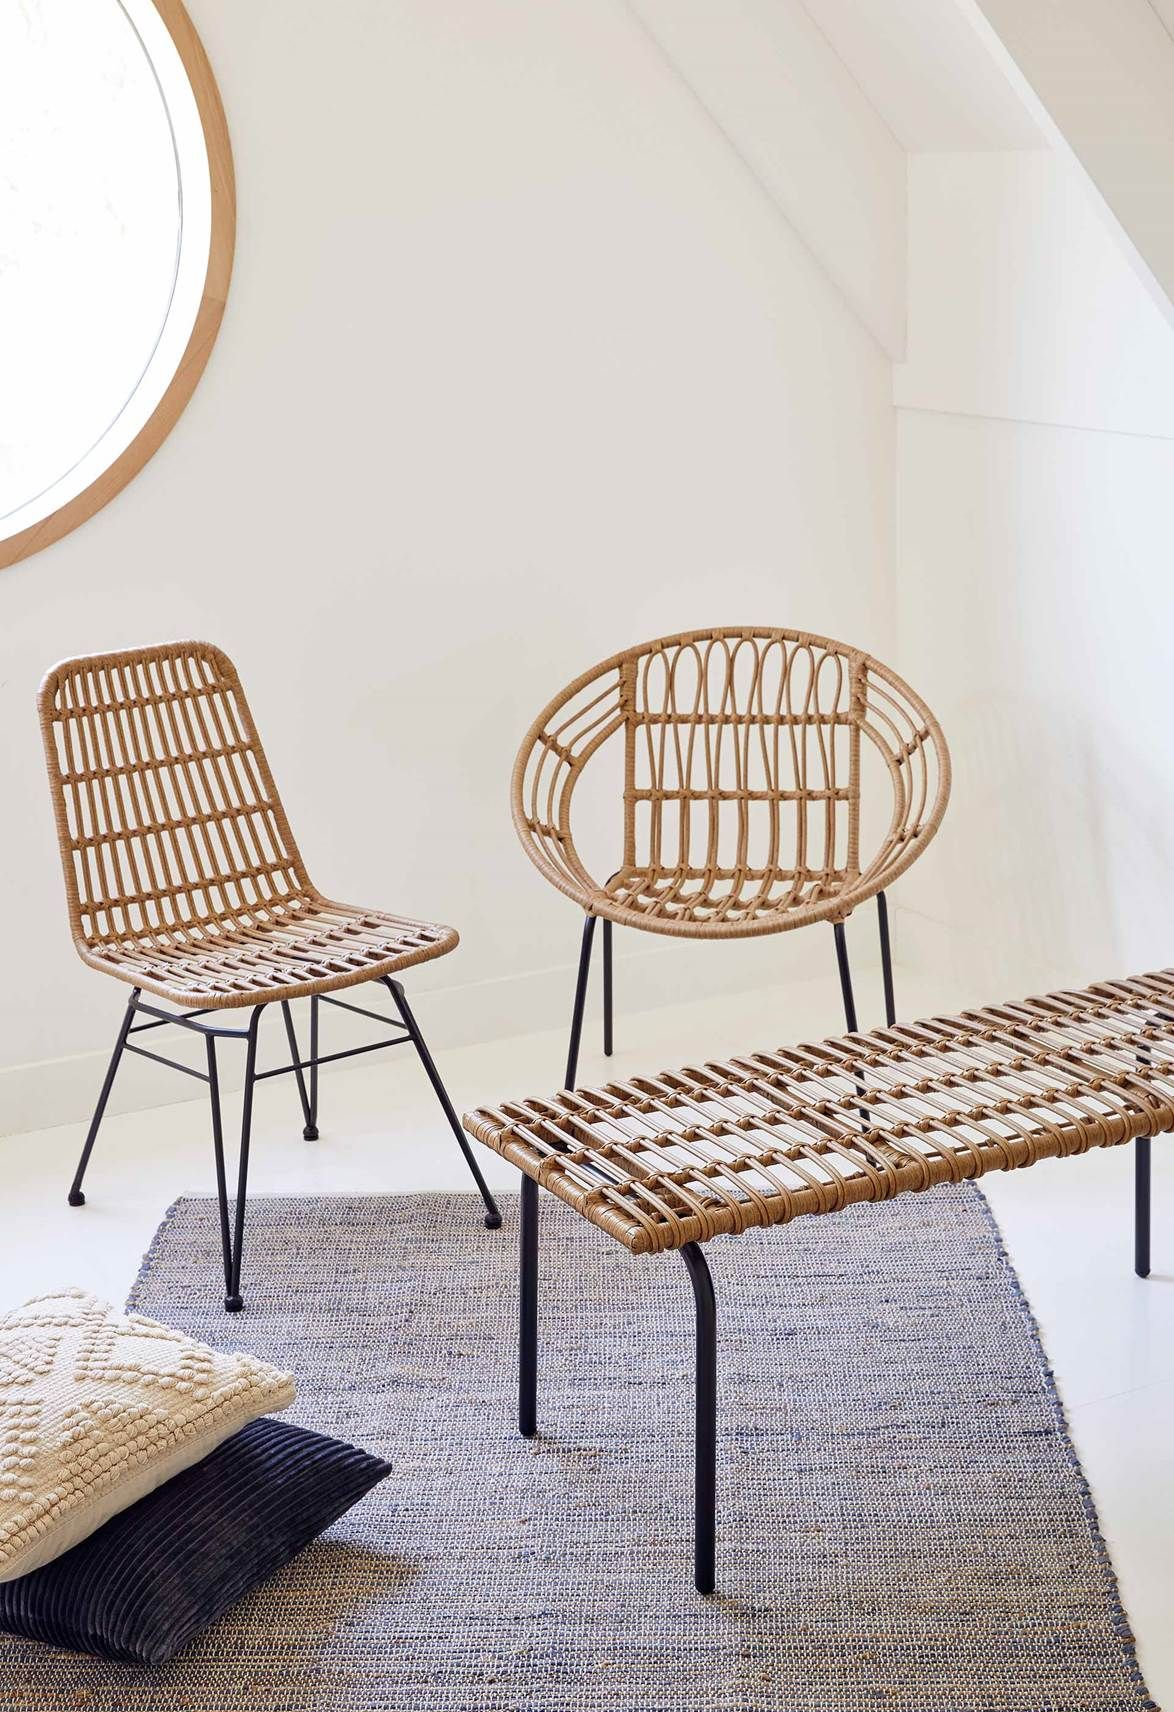 Target Australia Furniture Target Australia S New 2019 Homewares Collection Has Just Arrived